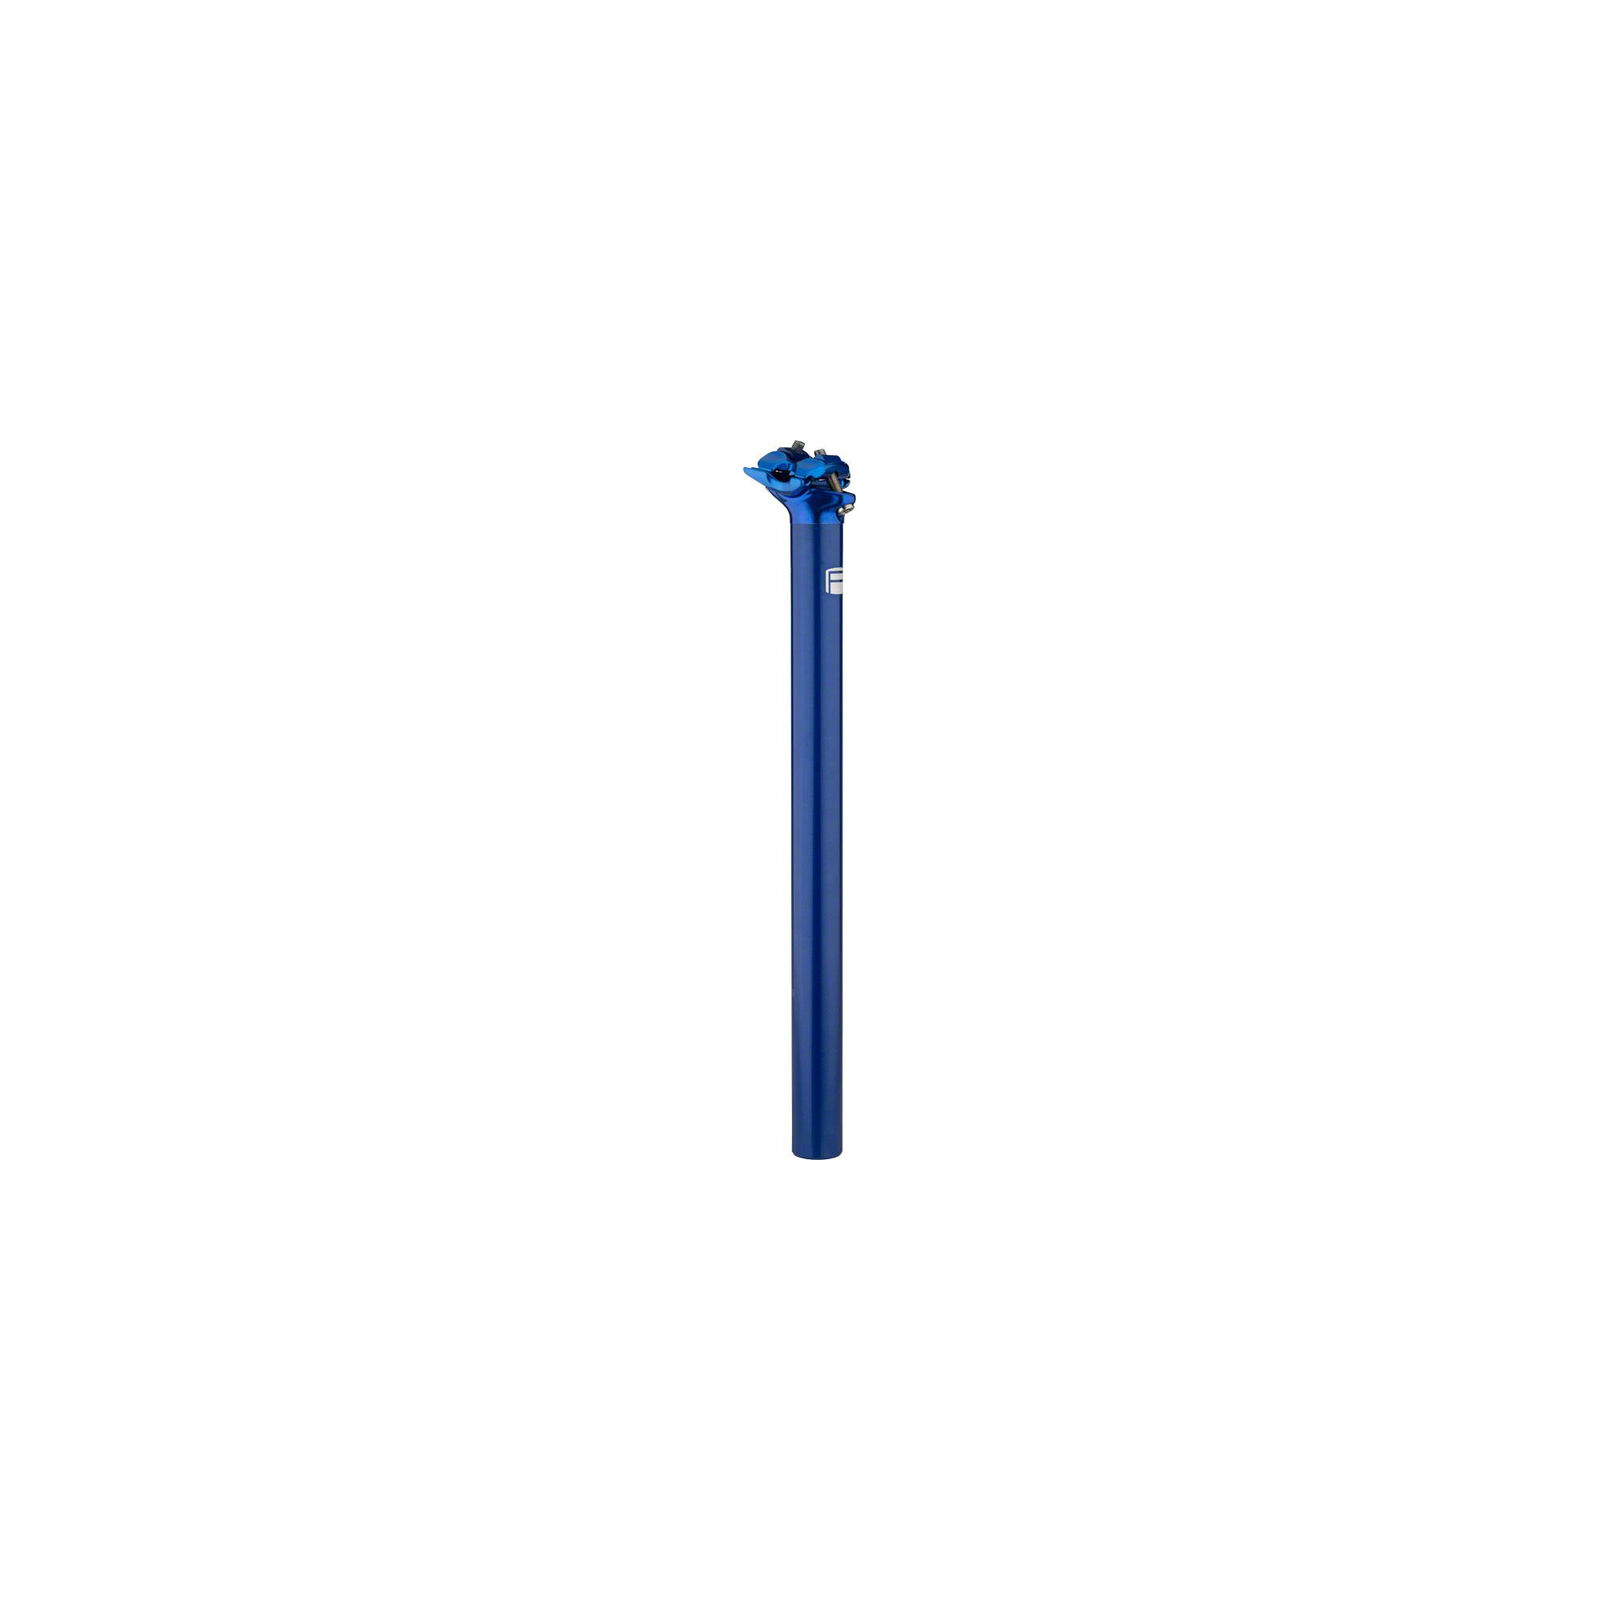 Promax SP-1 Seatpost  30.9 x 400mm blueee  high discount